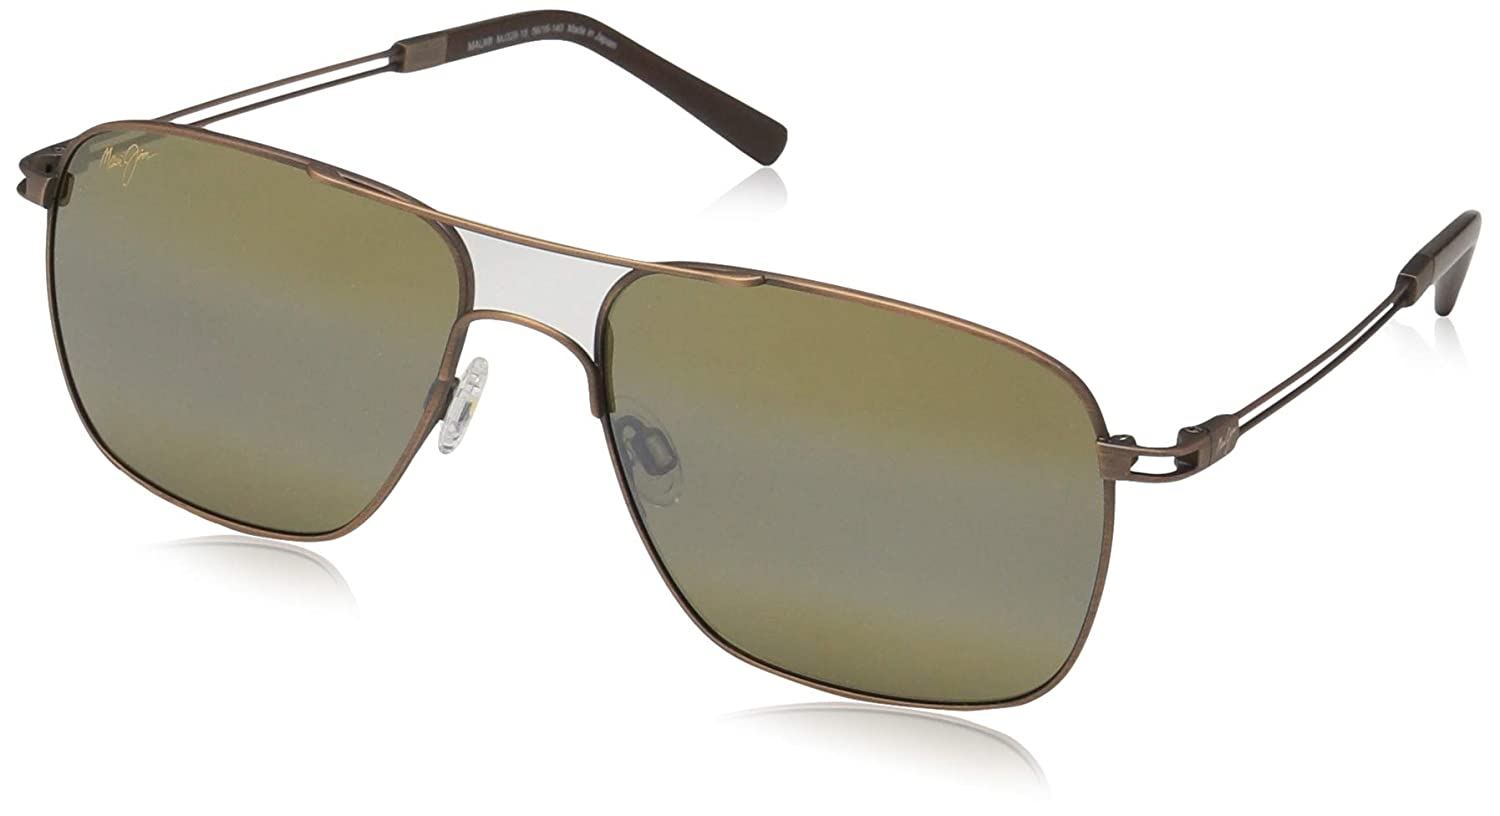 ba0c7a3772 Amazon.com: Maui Jim Haliewa H328-18 | Polarized Copper Aviator Frame  Sunglasses, HCL Bronze Lenses, with Patented PolarizedPlus2 Lens  Technology: Clothing